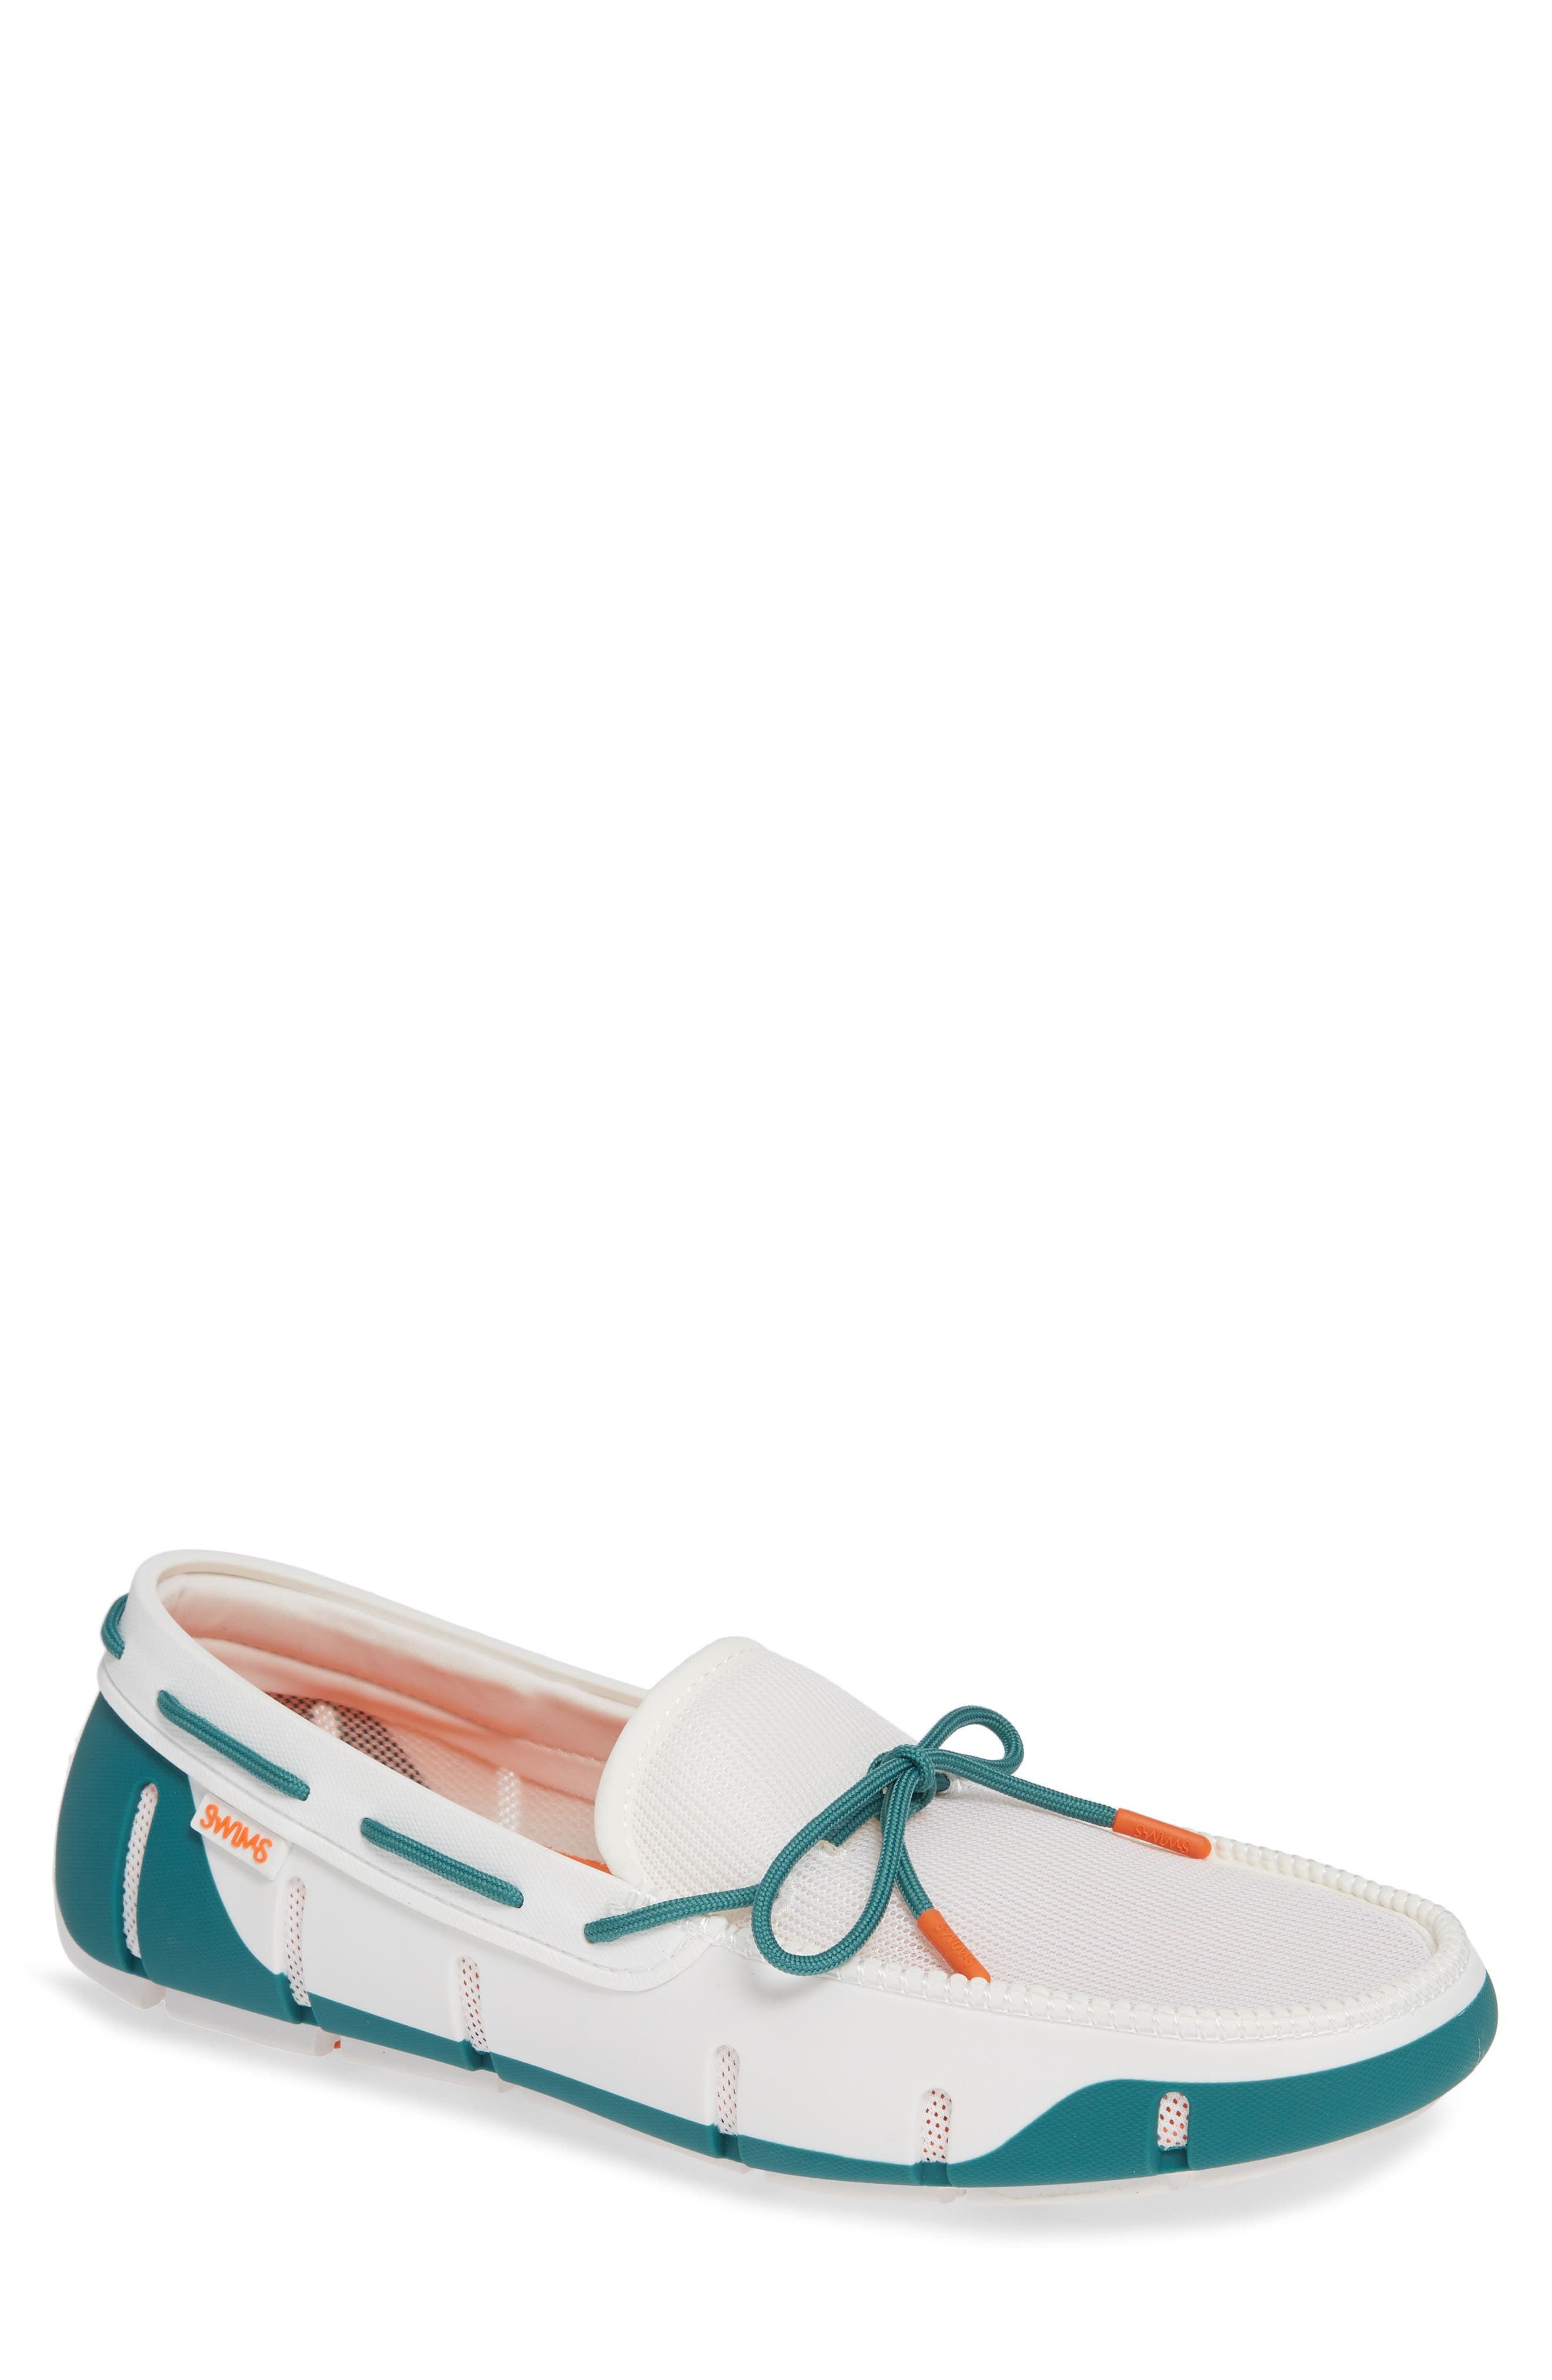 SWIMS Stride Lace Loafer, Main, color, 100